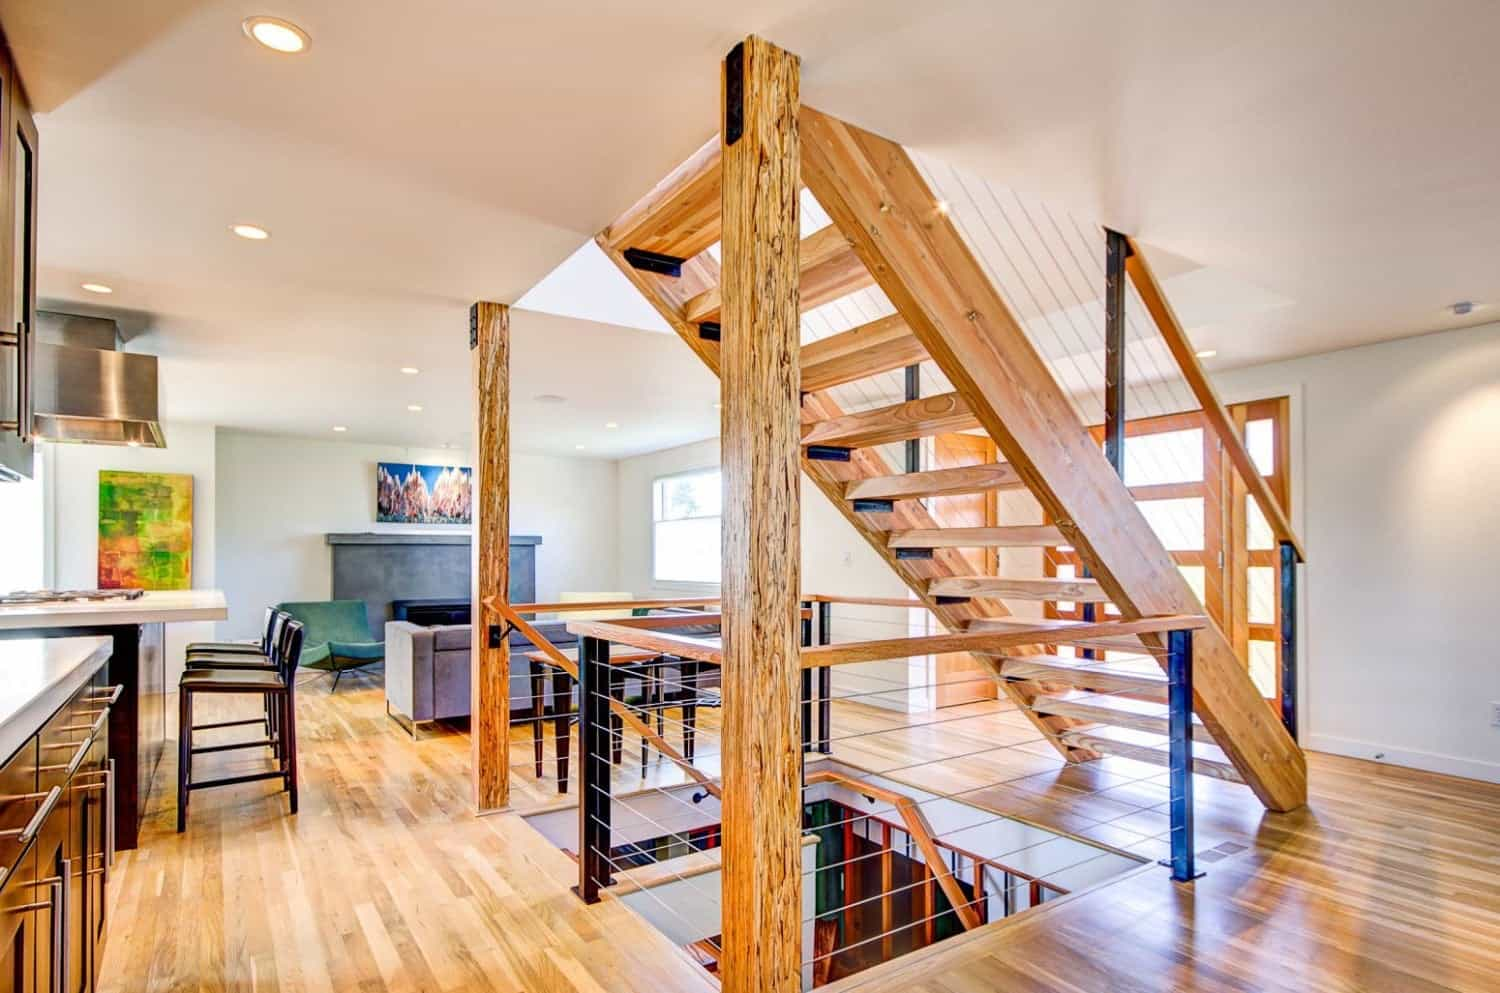 Featured Image of Open Plan Living Space With Floating Wood Staircase